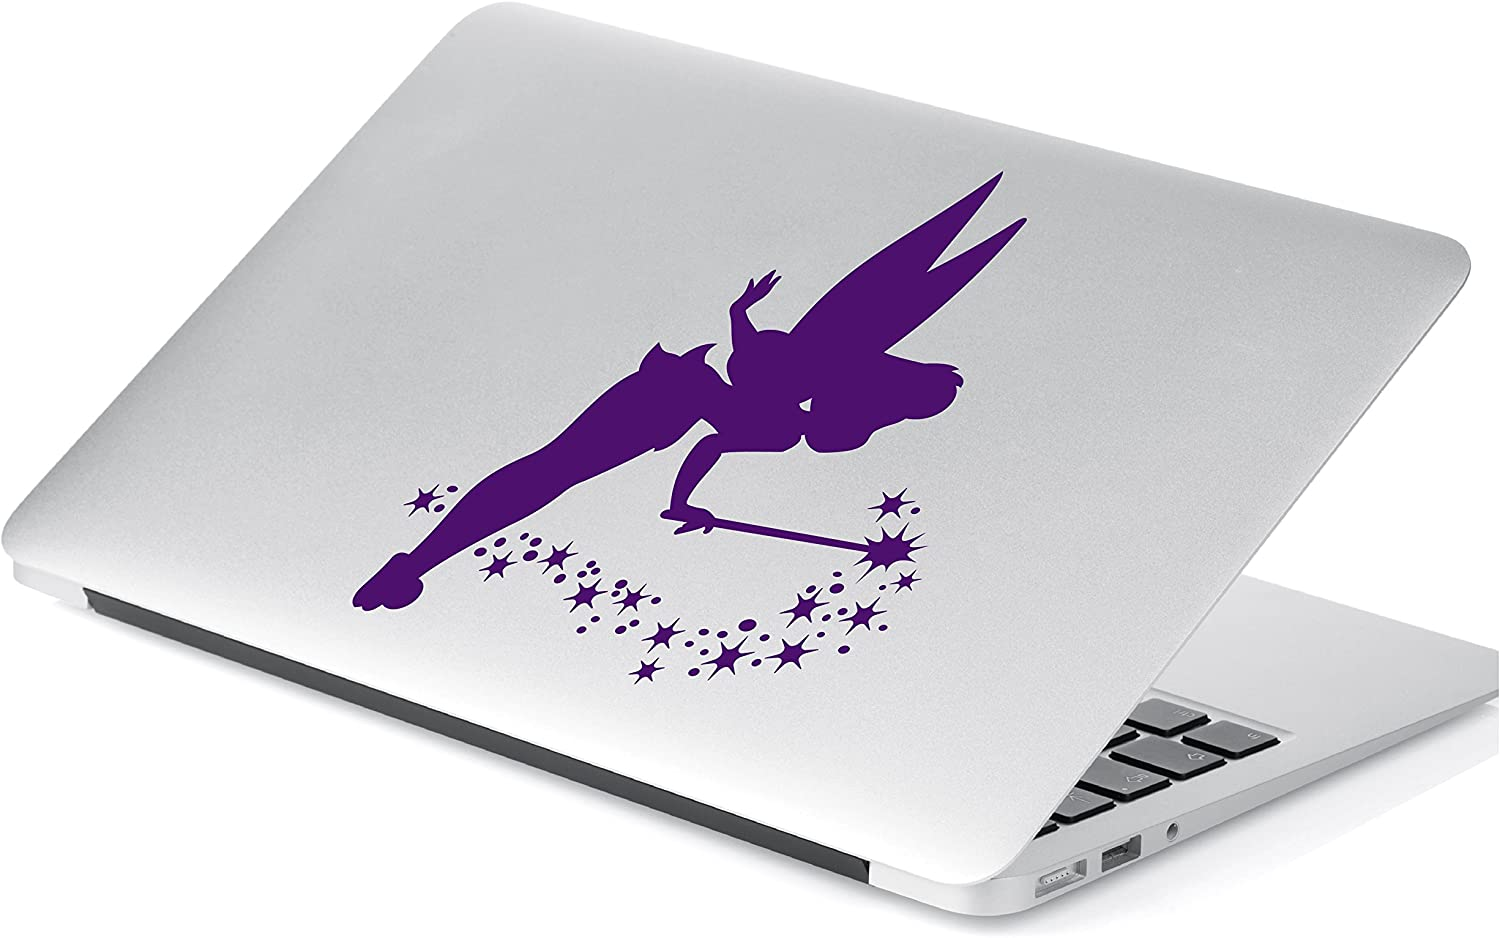 """Yoonek Graphics Tinkerbell Decal Sticker for Car Window, Laptop, Motorcycle, Walls, Mirror and More. # 539 (6"""" x 4.9"""", Violet)"""